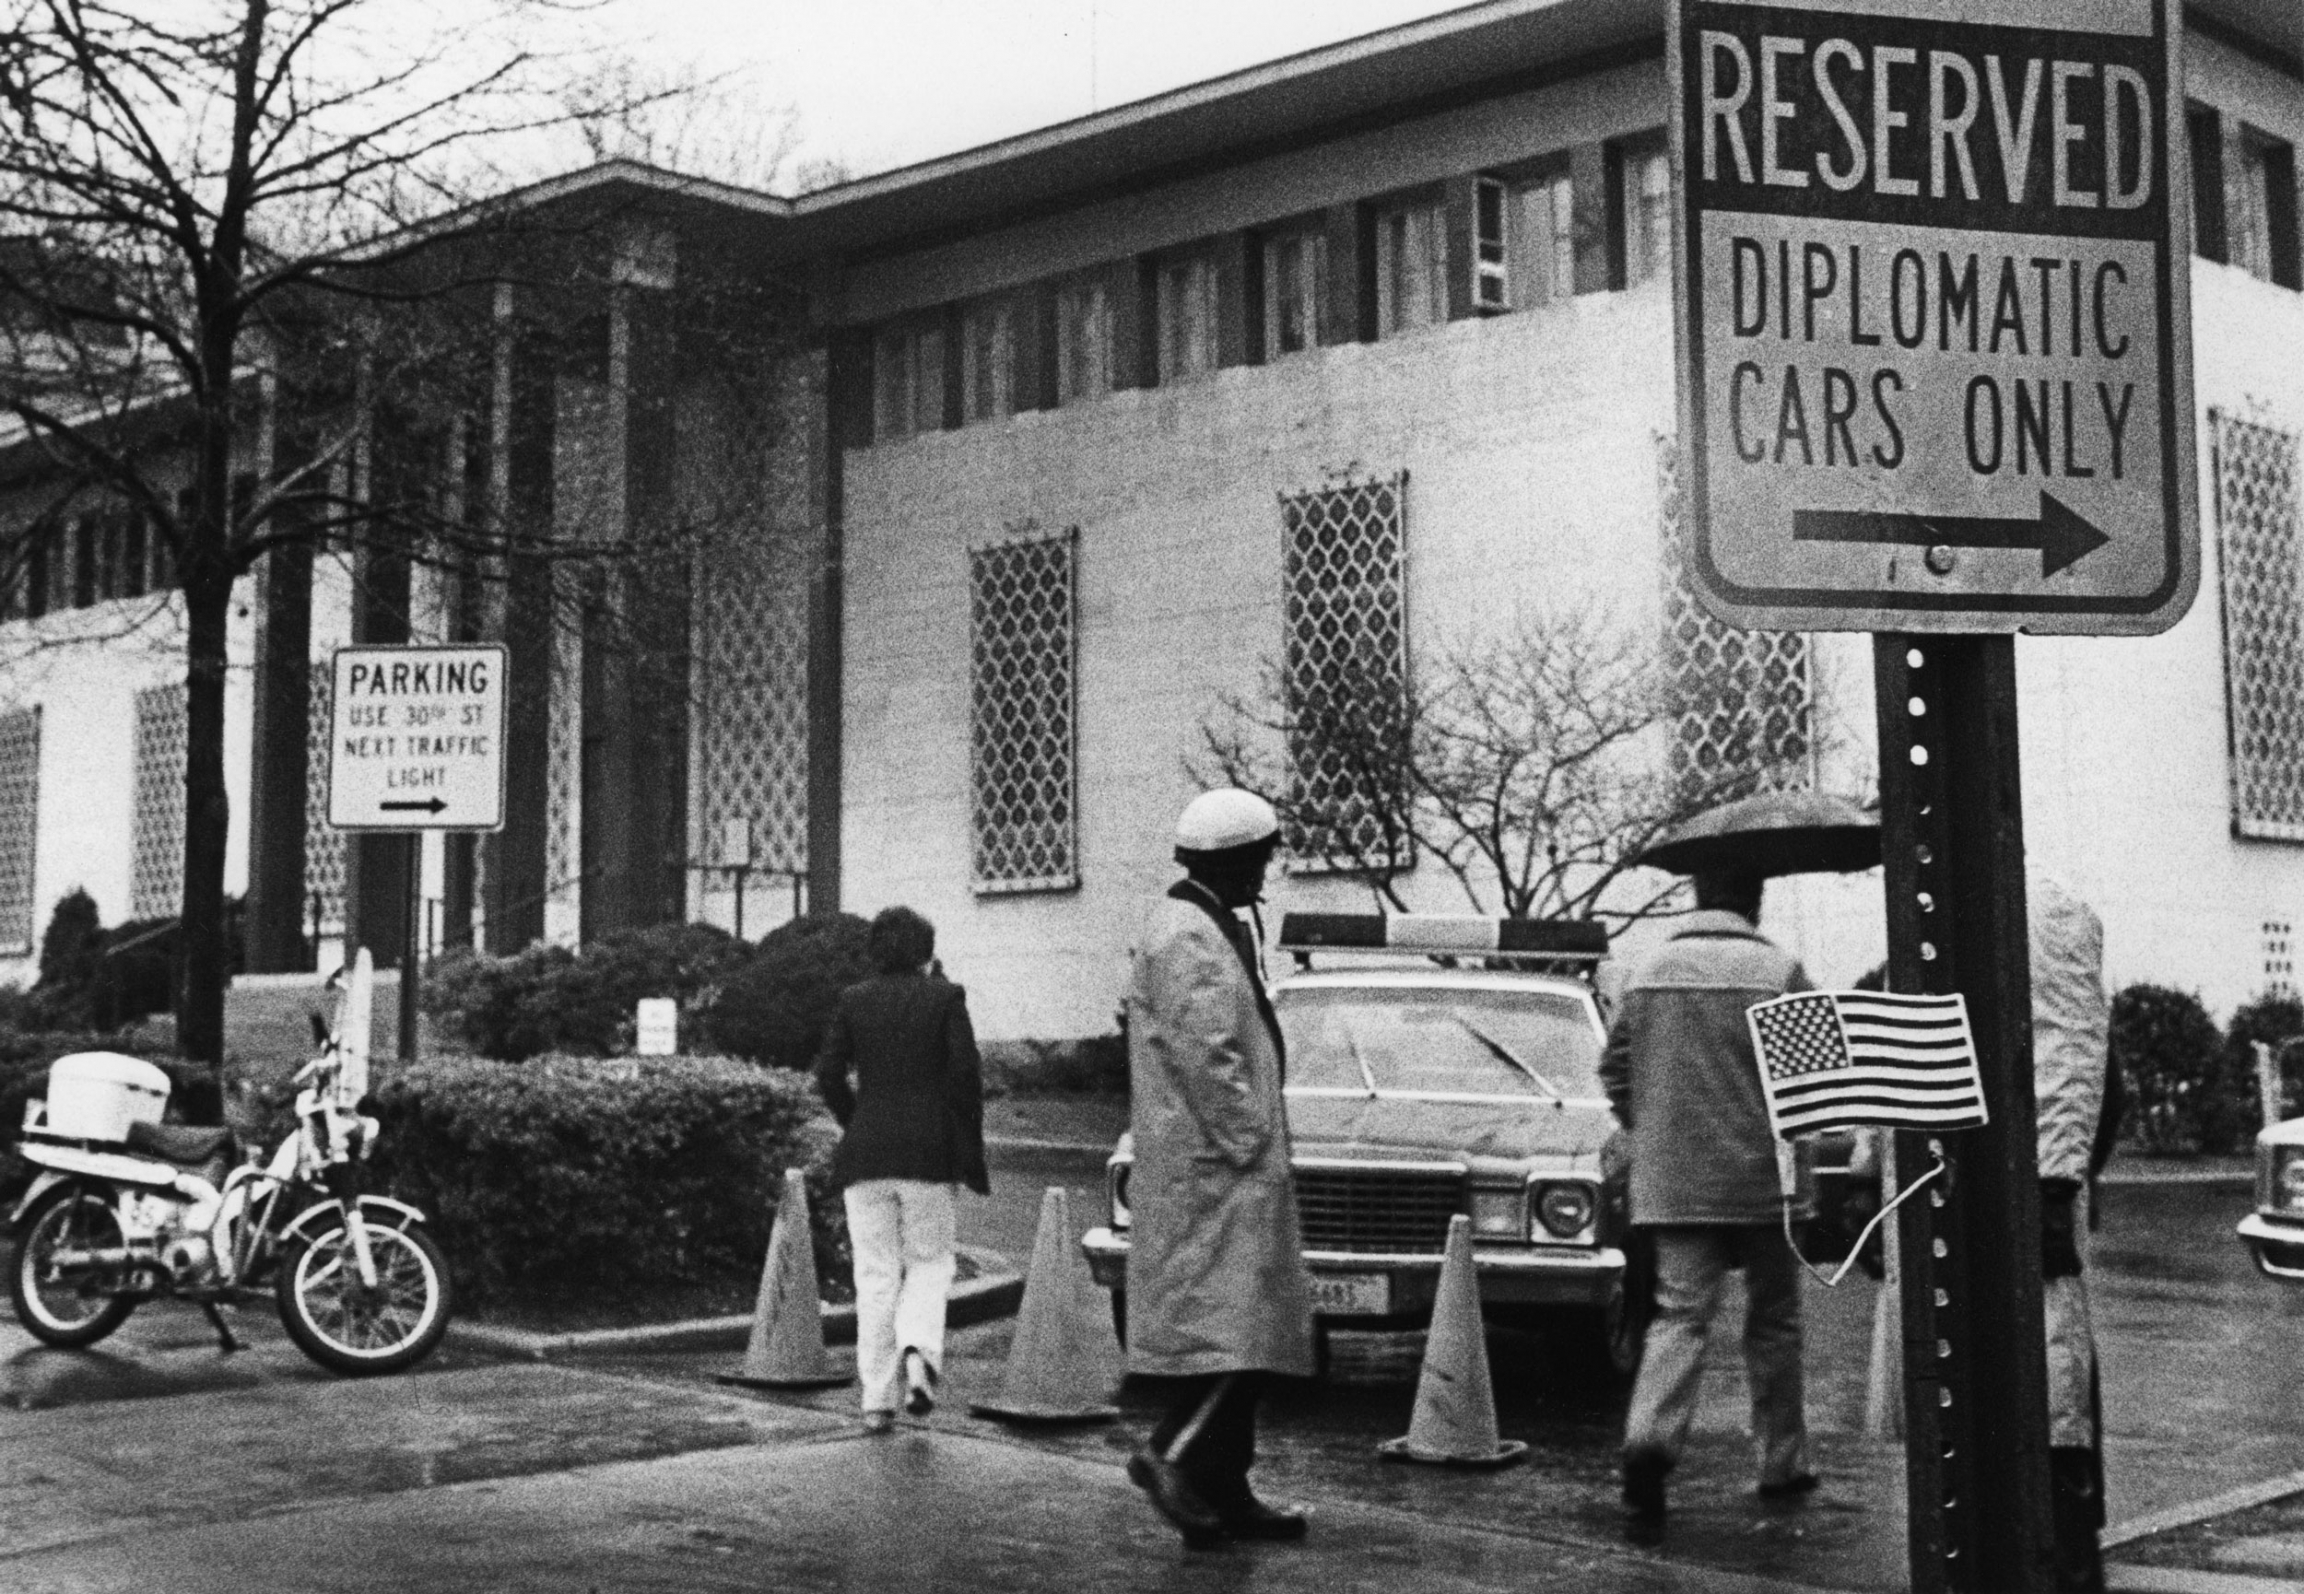 Several people and a police car are shown in this black and white photograph with the former Embassy of Iran in the background.